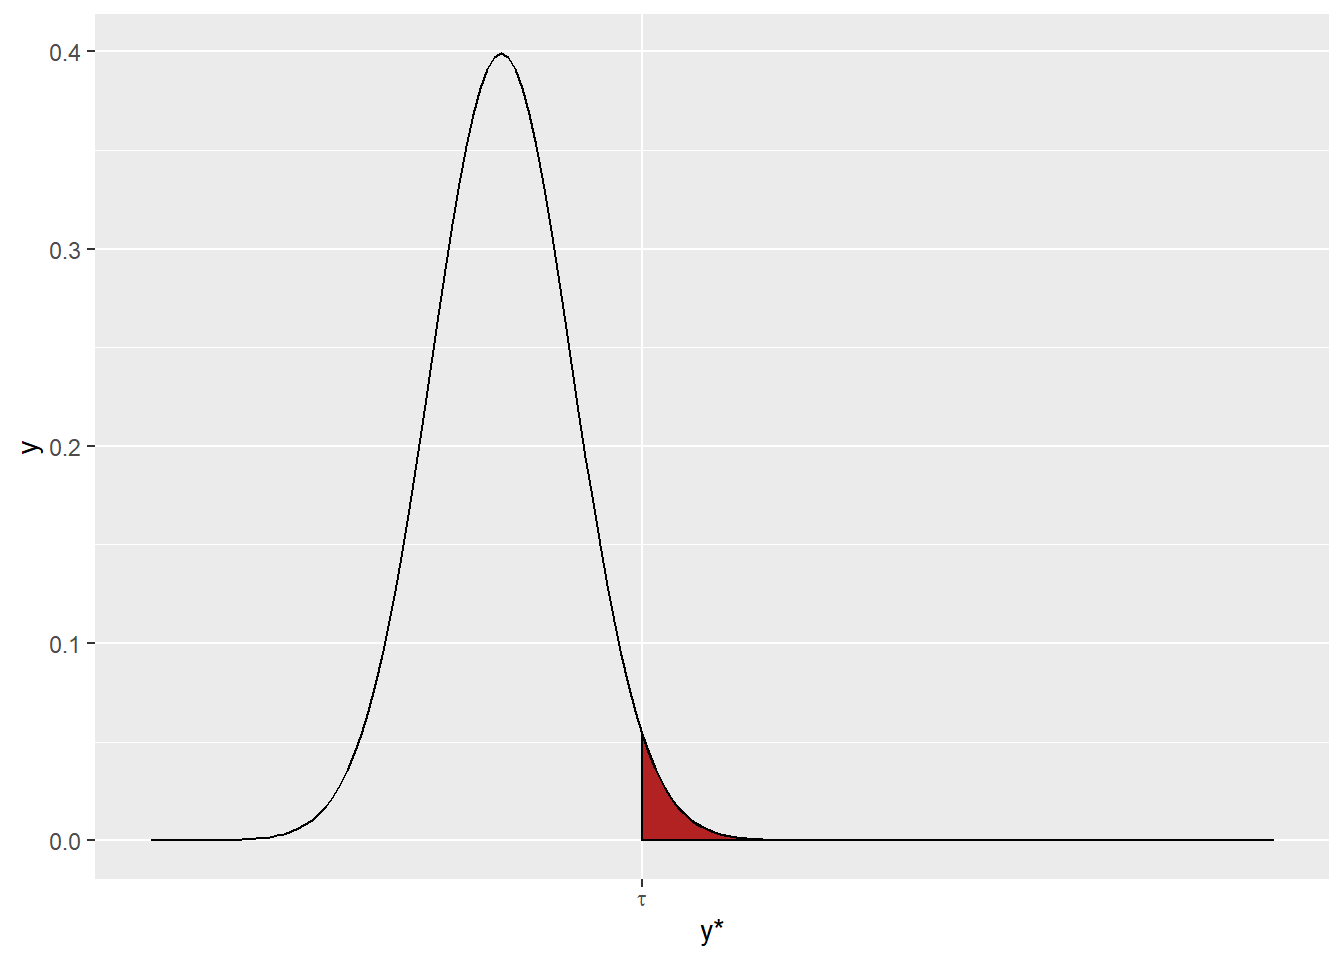 Bias Adjustment for Rare Events Logistic Regression in R